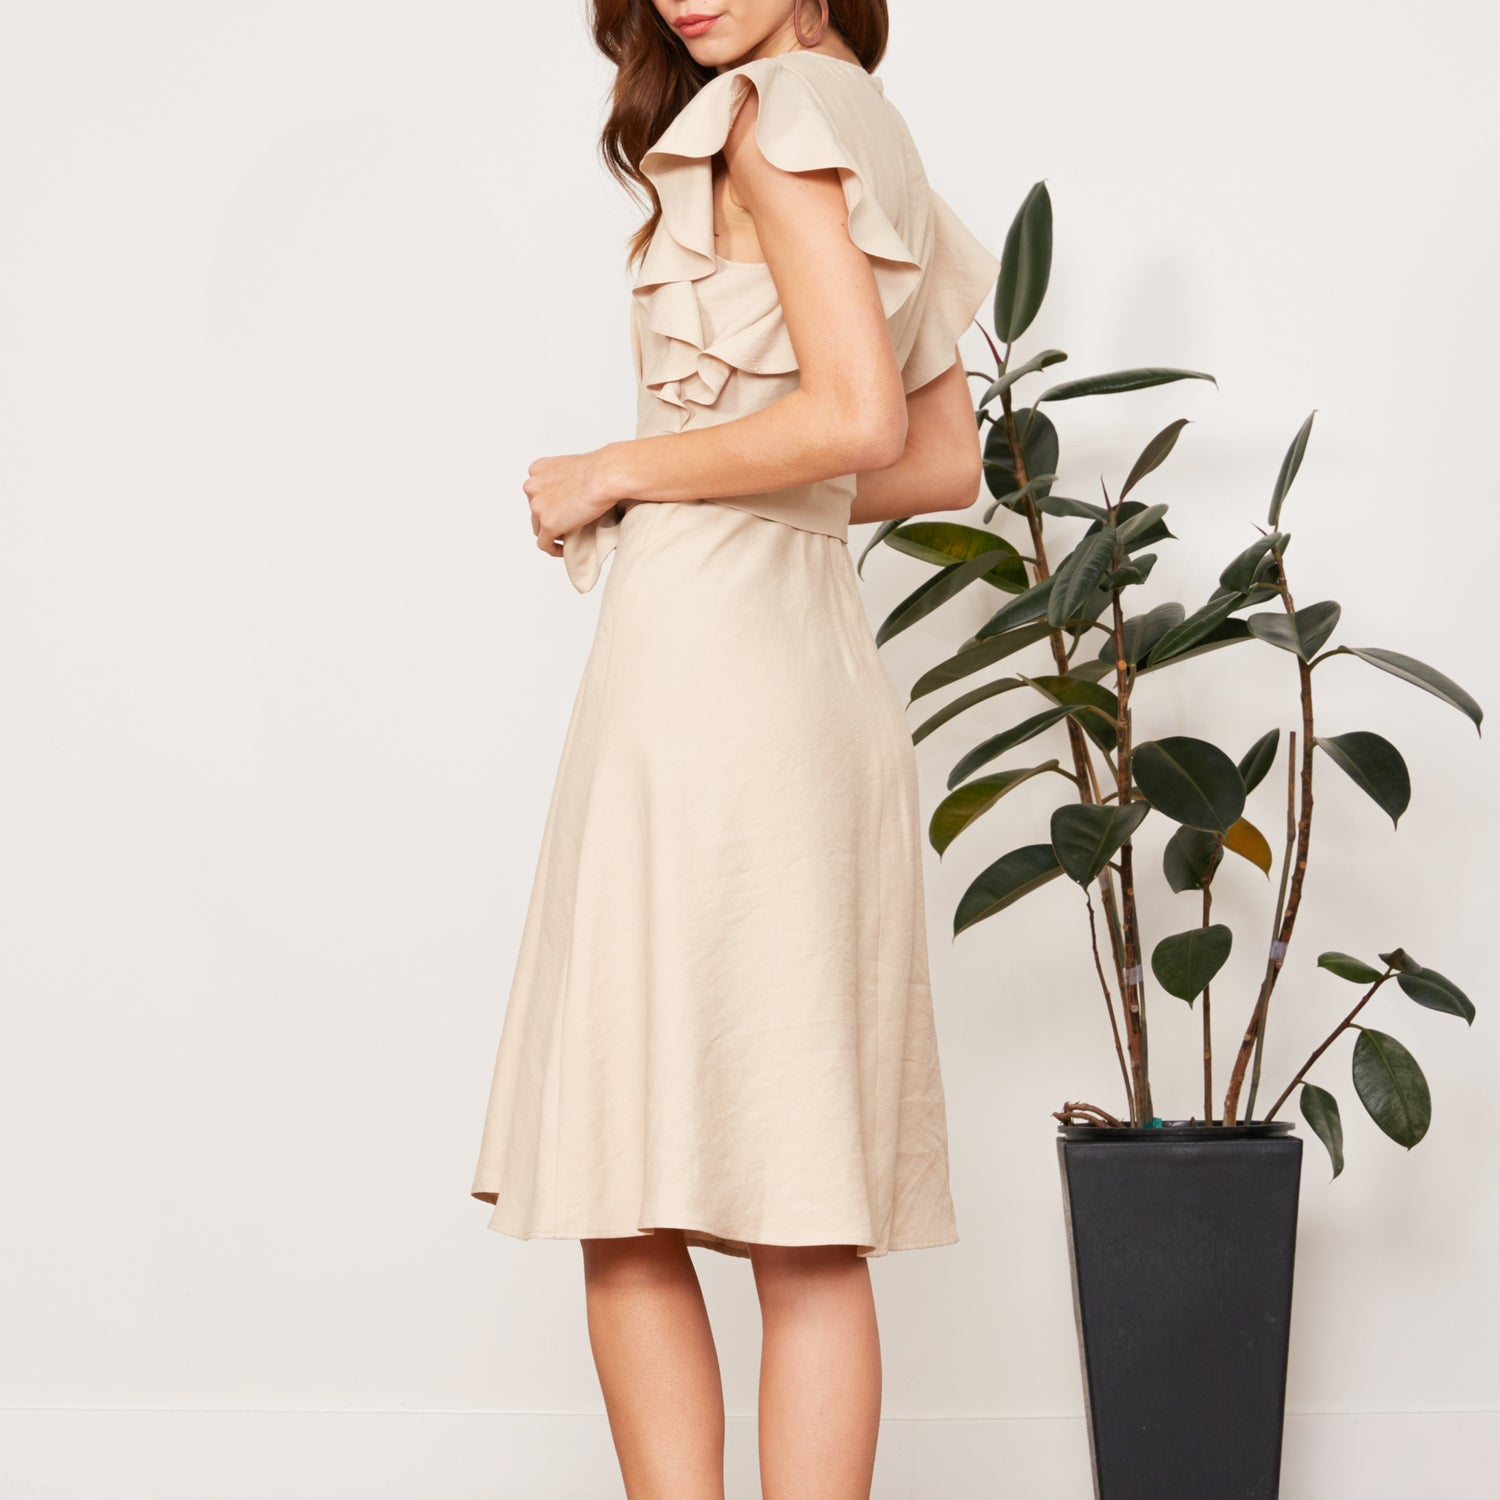 Celeste Belted Dress